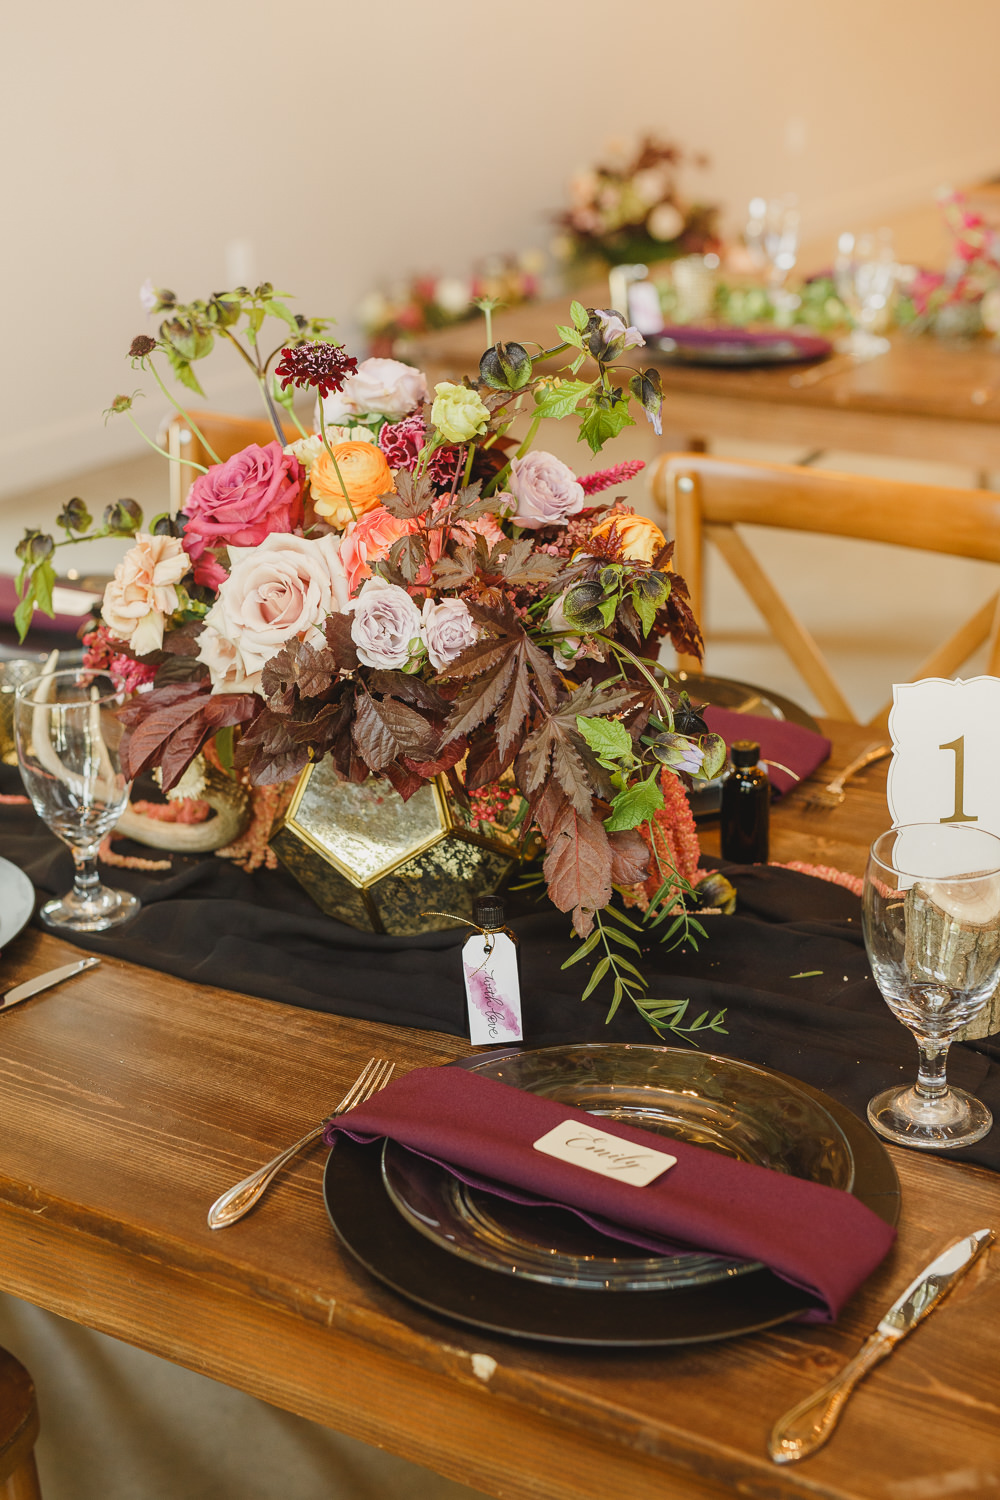 Table Decor Tablescape Flowers Black Plates Red Napkins Candles Enchanted Forest Wedding Kristen Booth Photography